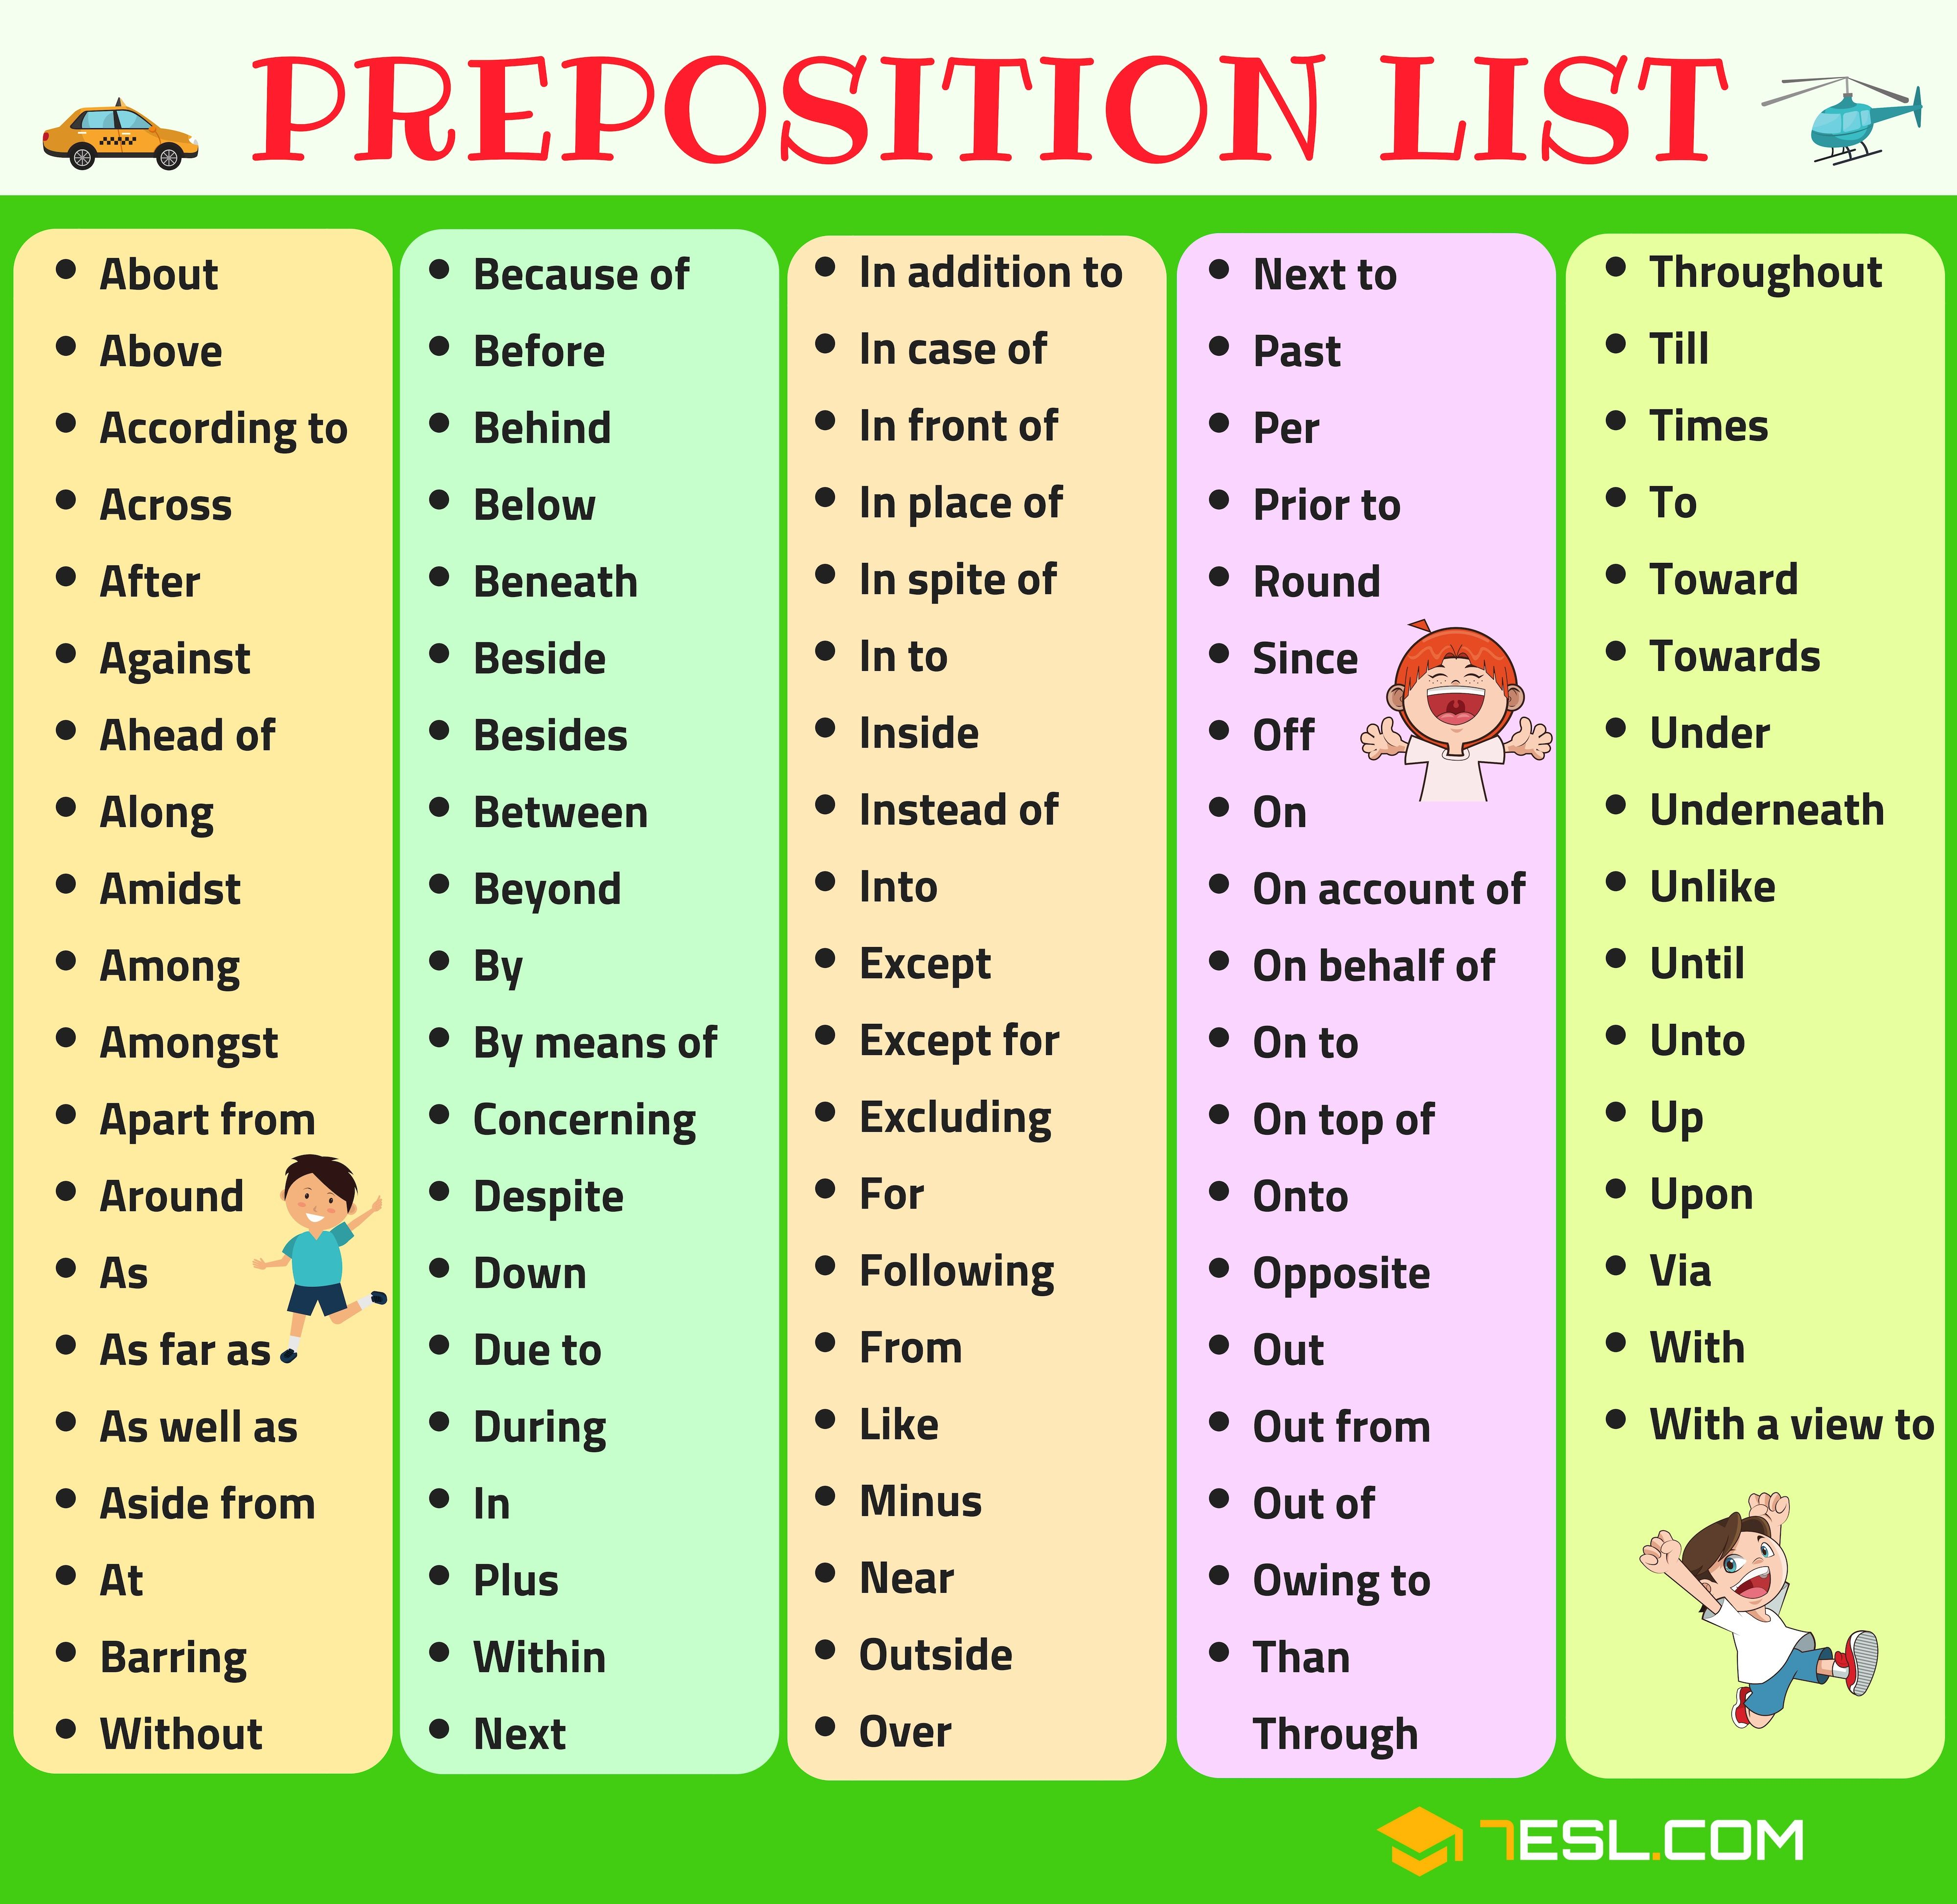 This is an image of Sweet Printable List of Prepositions